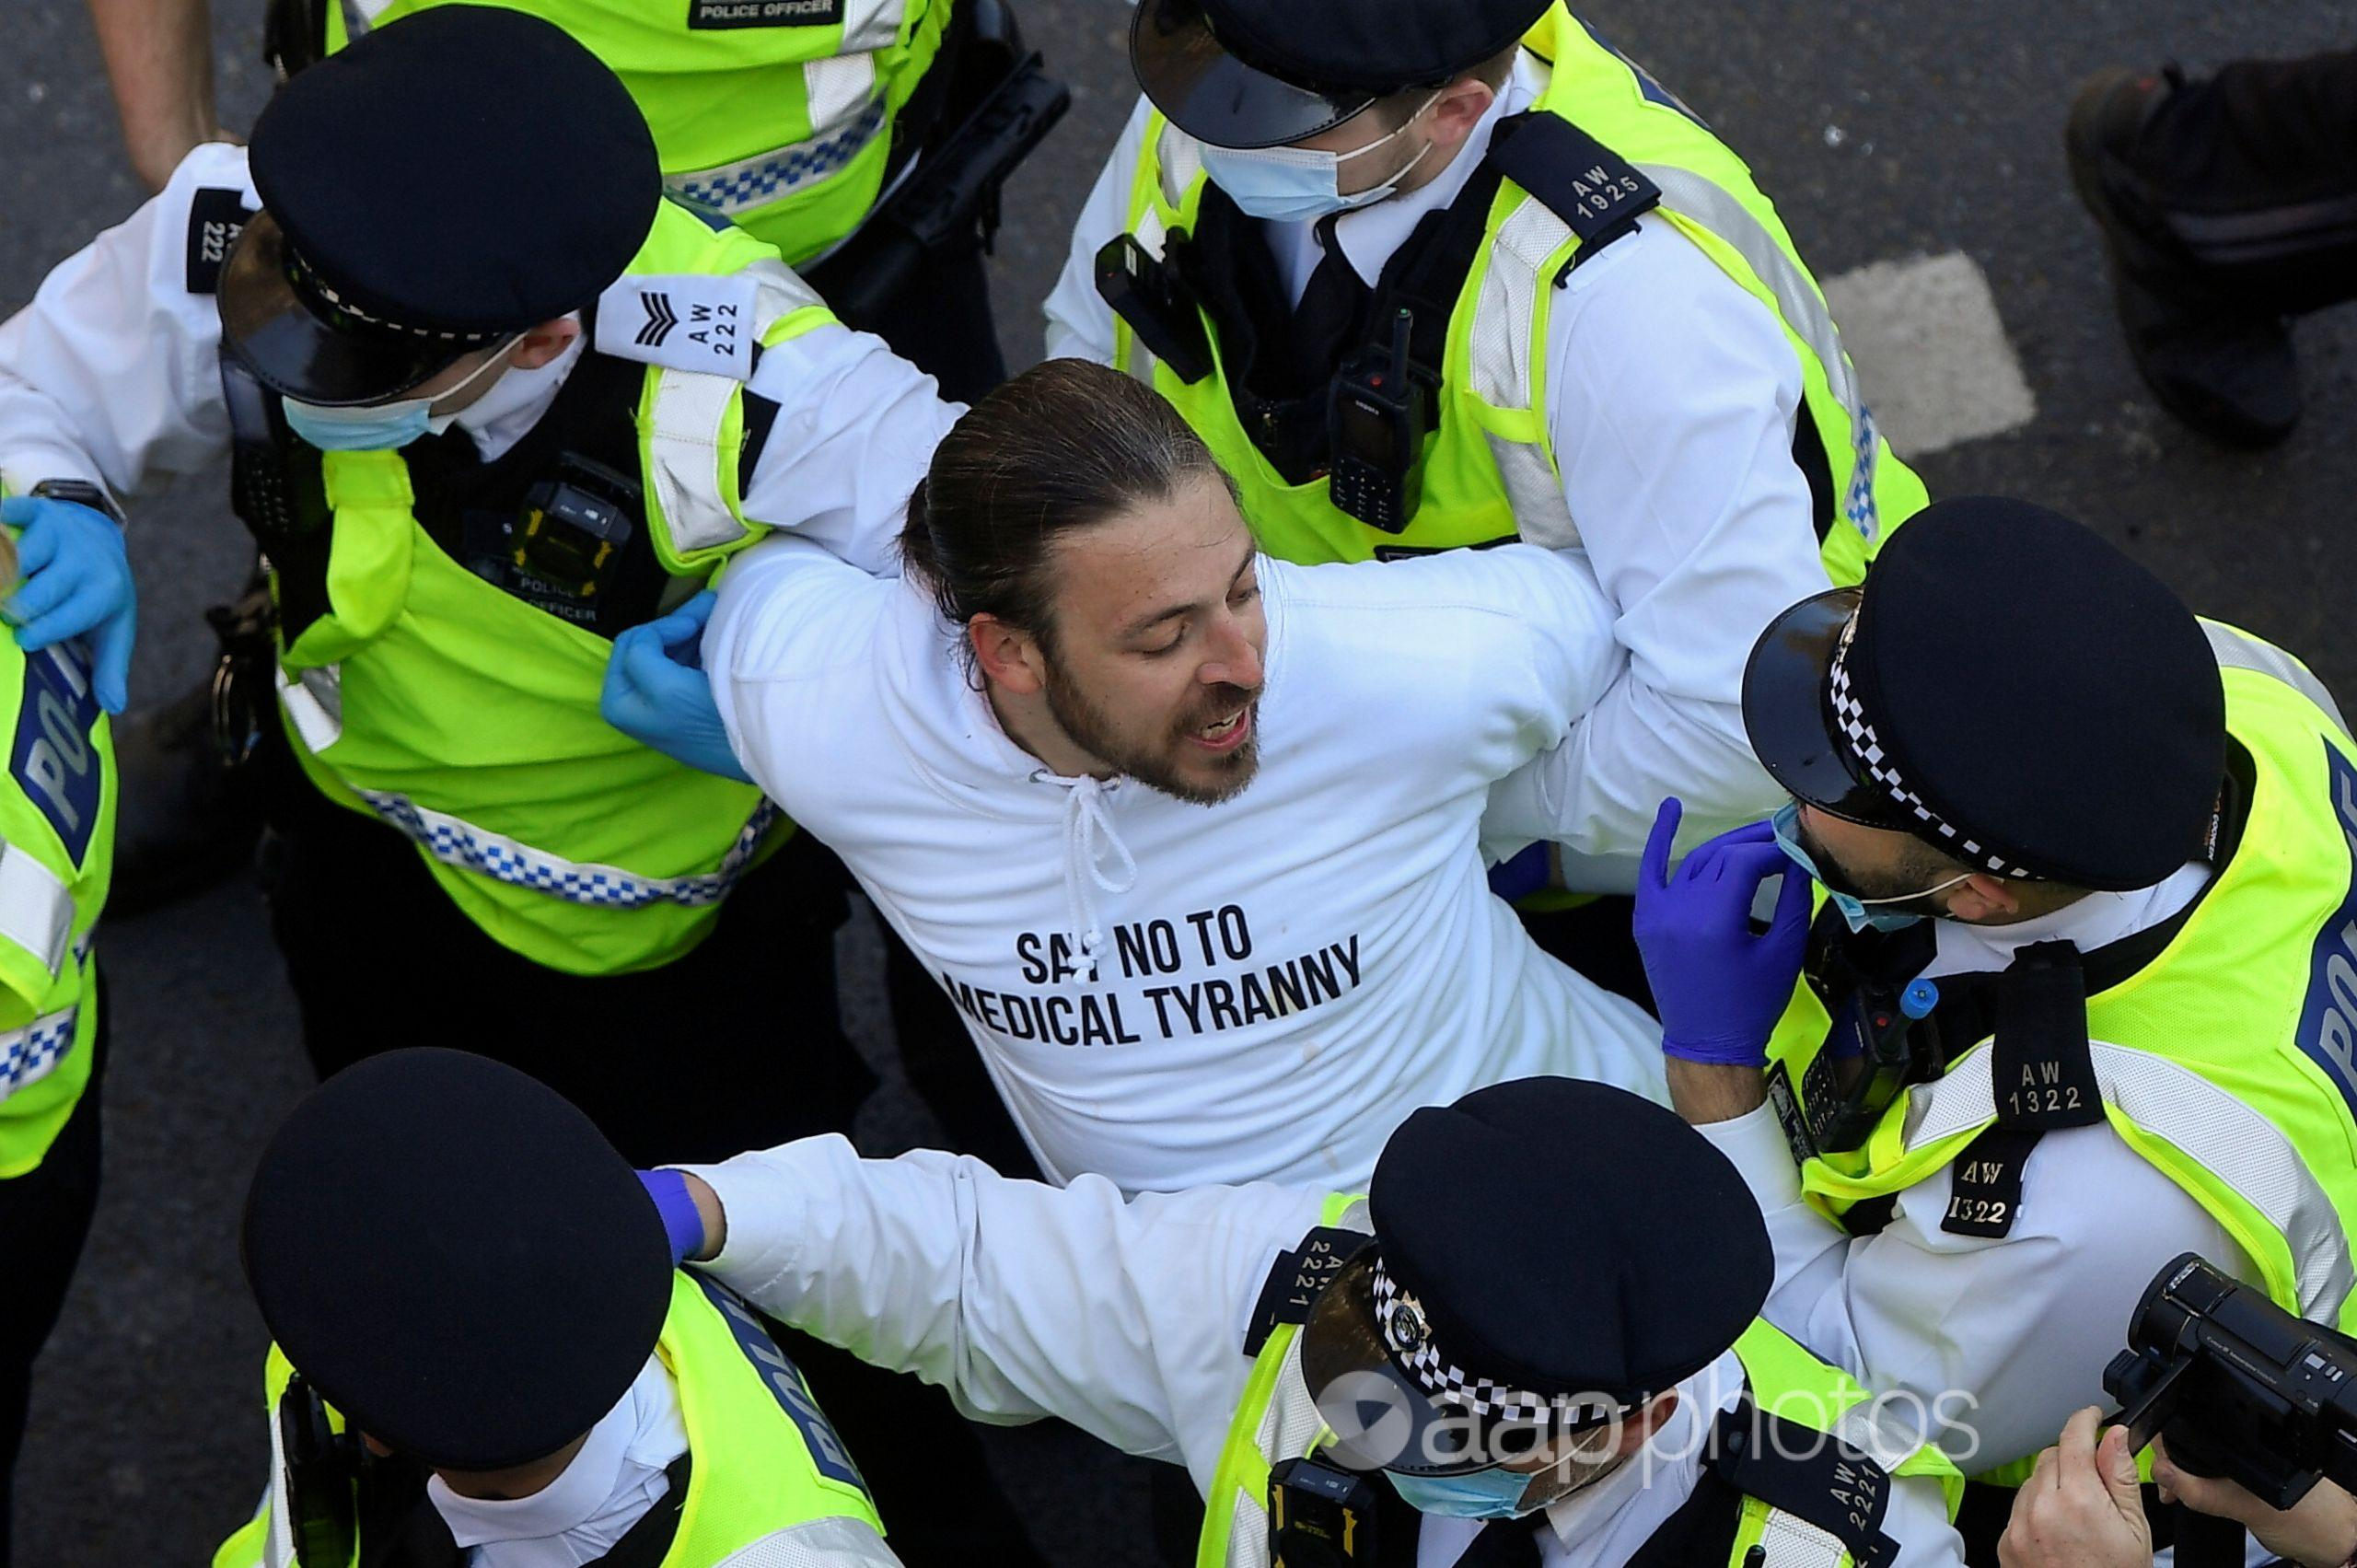 Police detain a demonstrator during the anti-lockdown protest